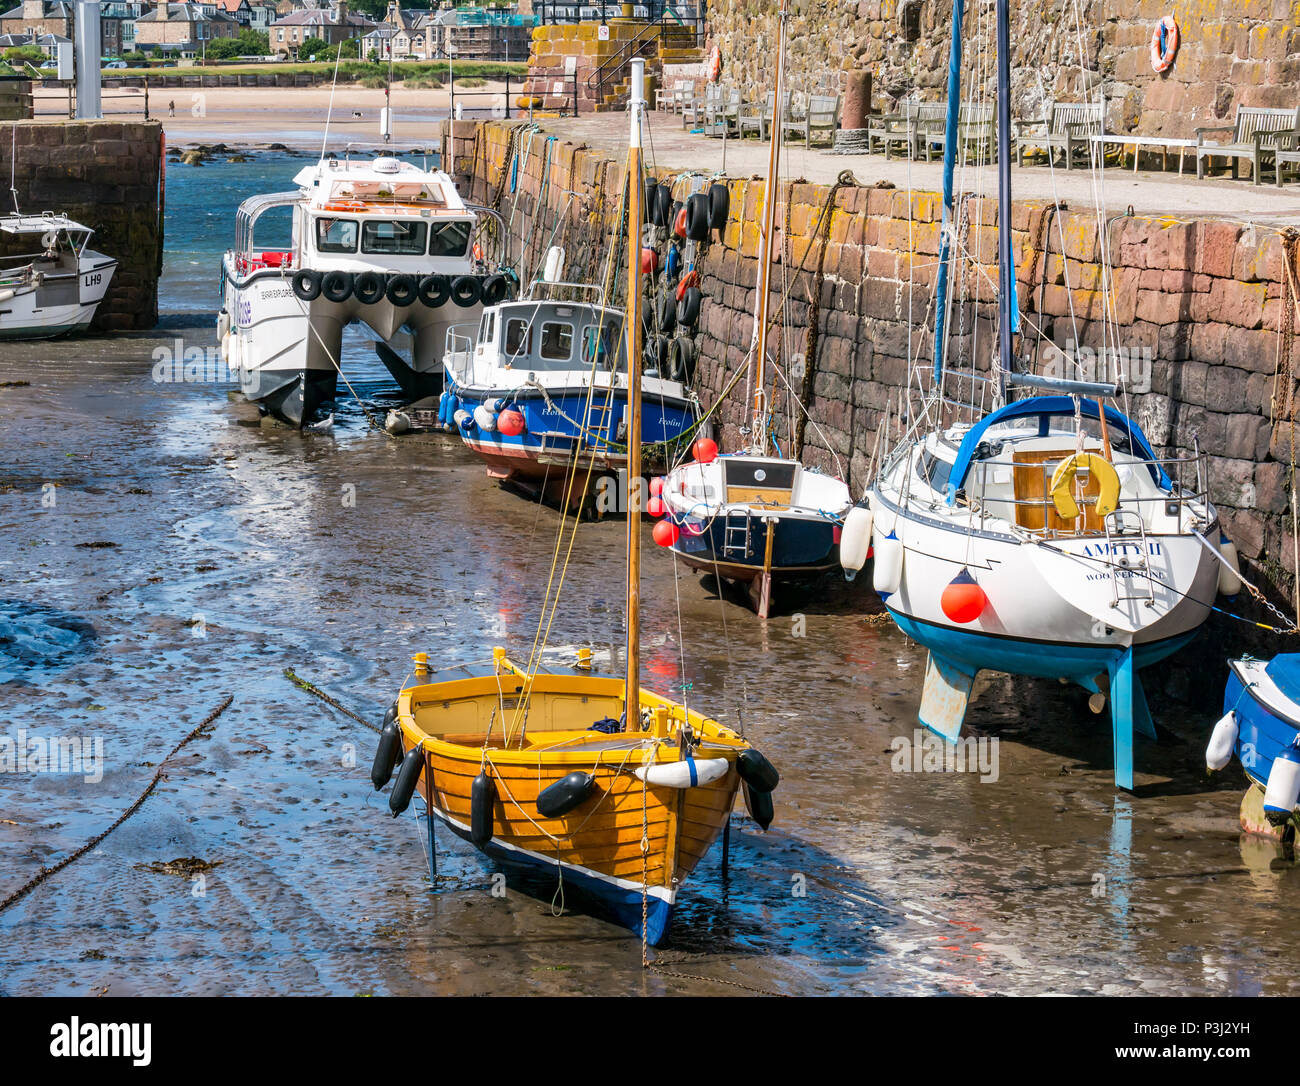 Wooden sailing boat and other boats in mud at low tide, with Seafari Explorer catamaran, North Berwick harbour, East Lothian, Scotland, UK Stock Photo